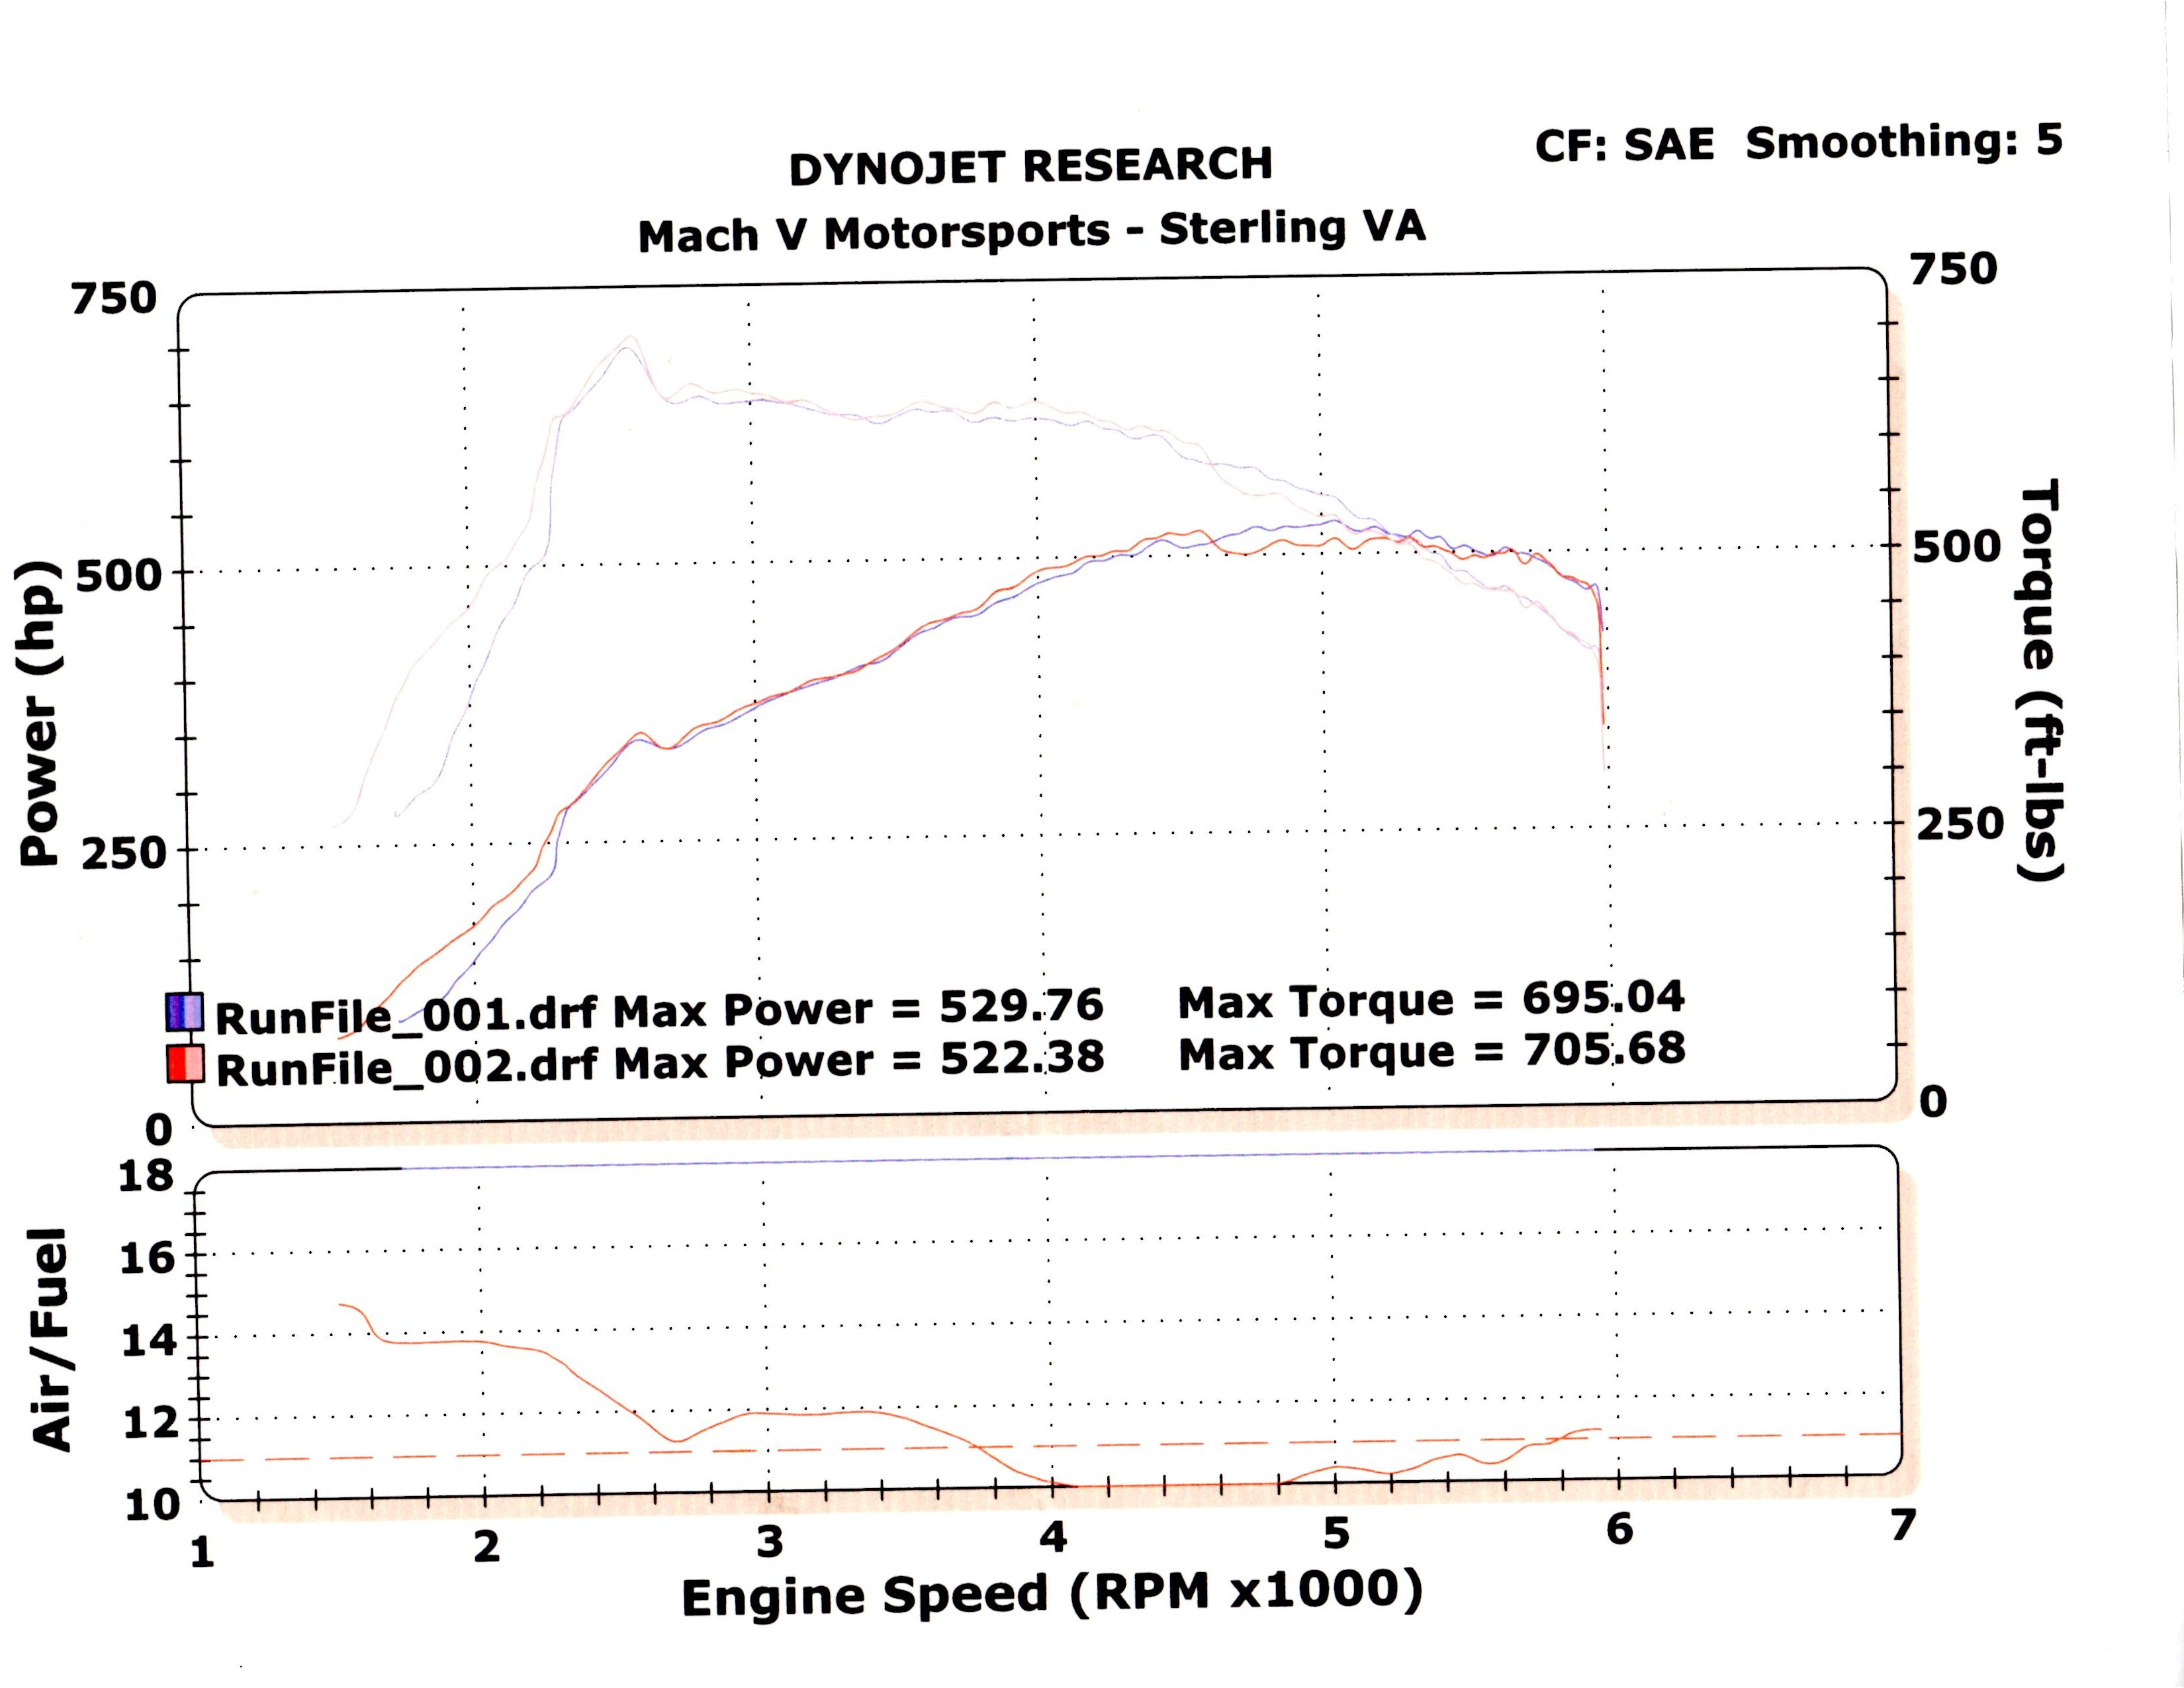 Mercedes-Benz S65 AMG Dyno Graph Results